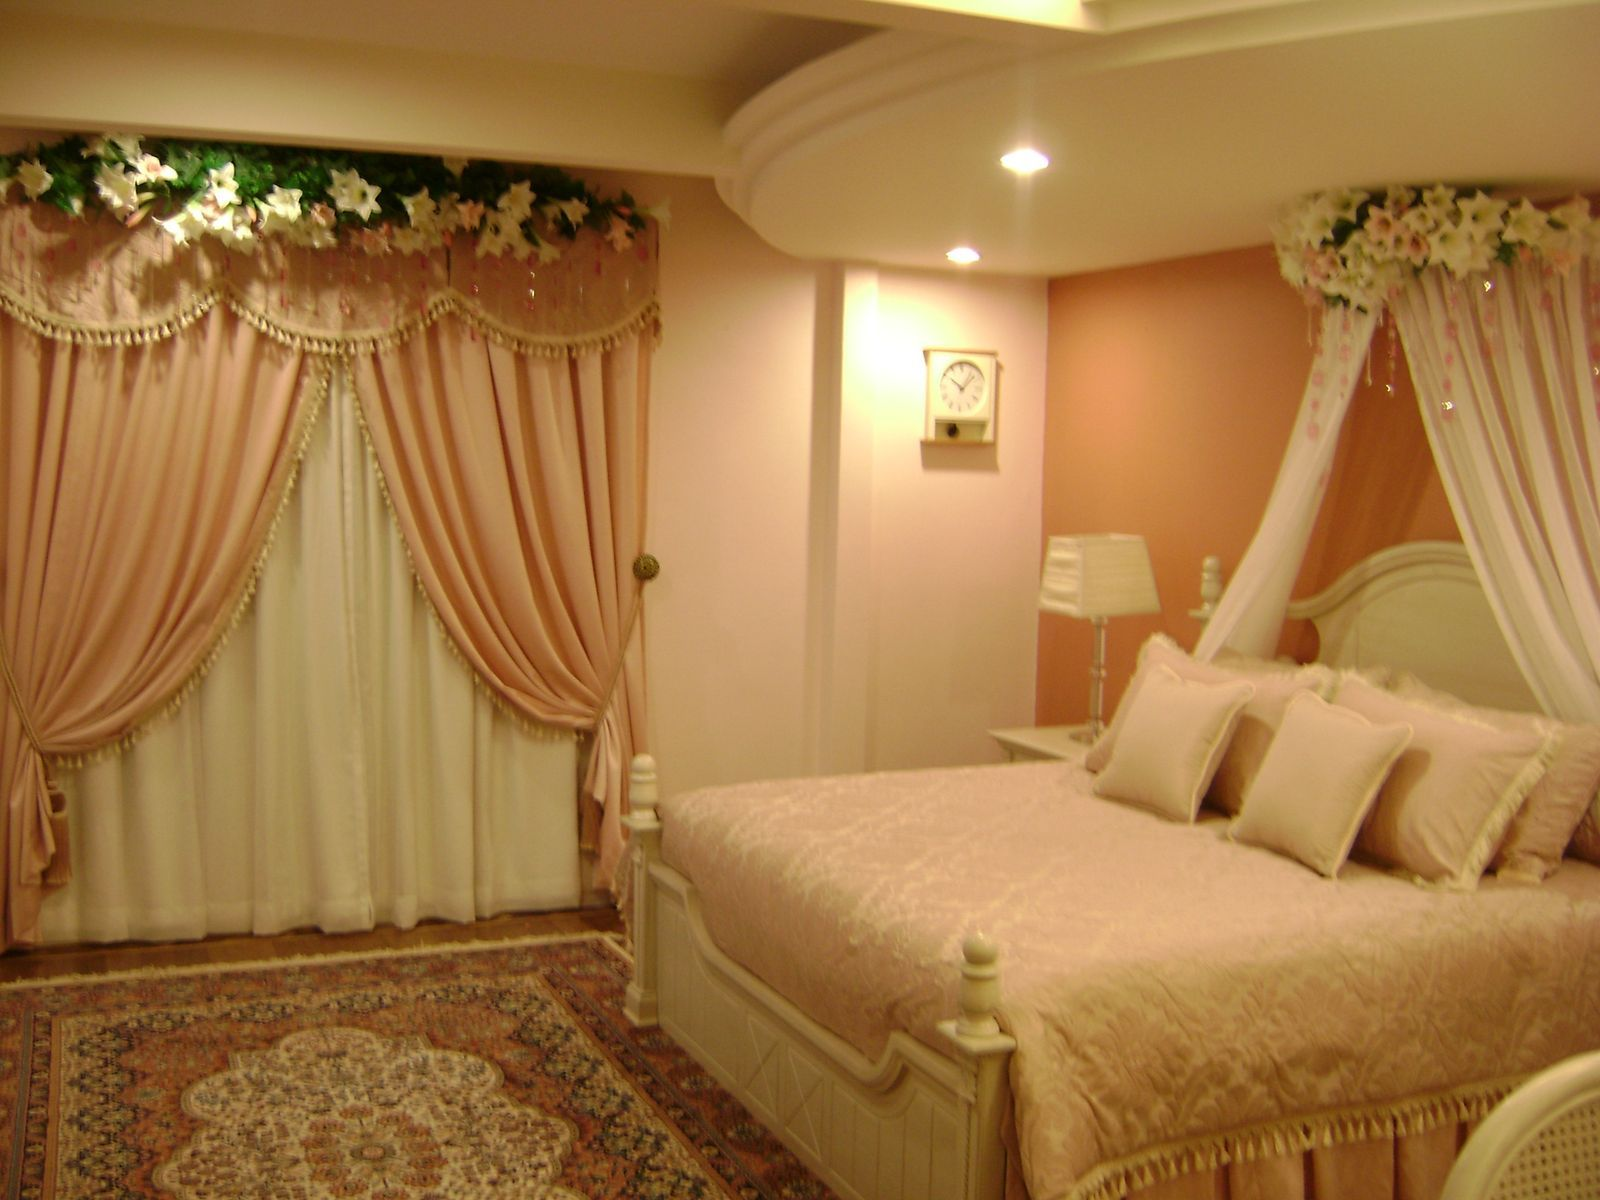 Romantic bedroom at night - Modern Bedroom Decoration For First Night Romantic